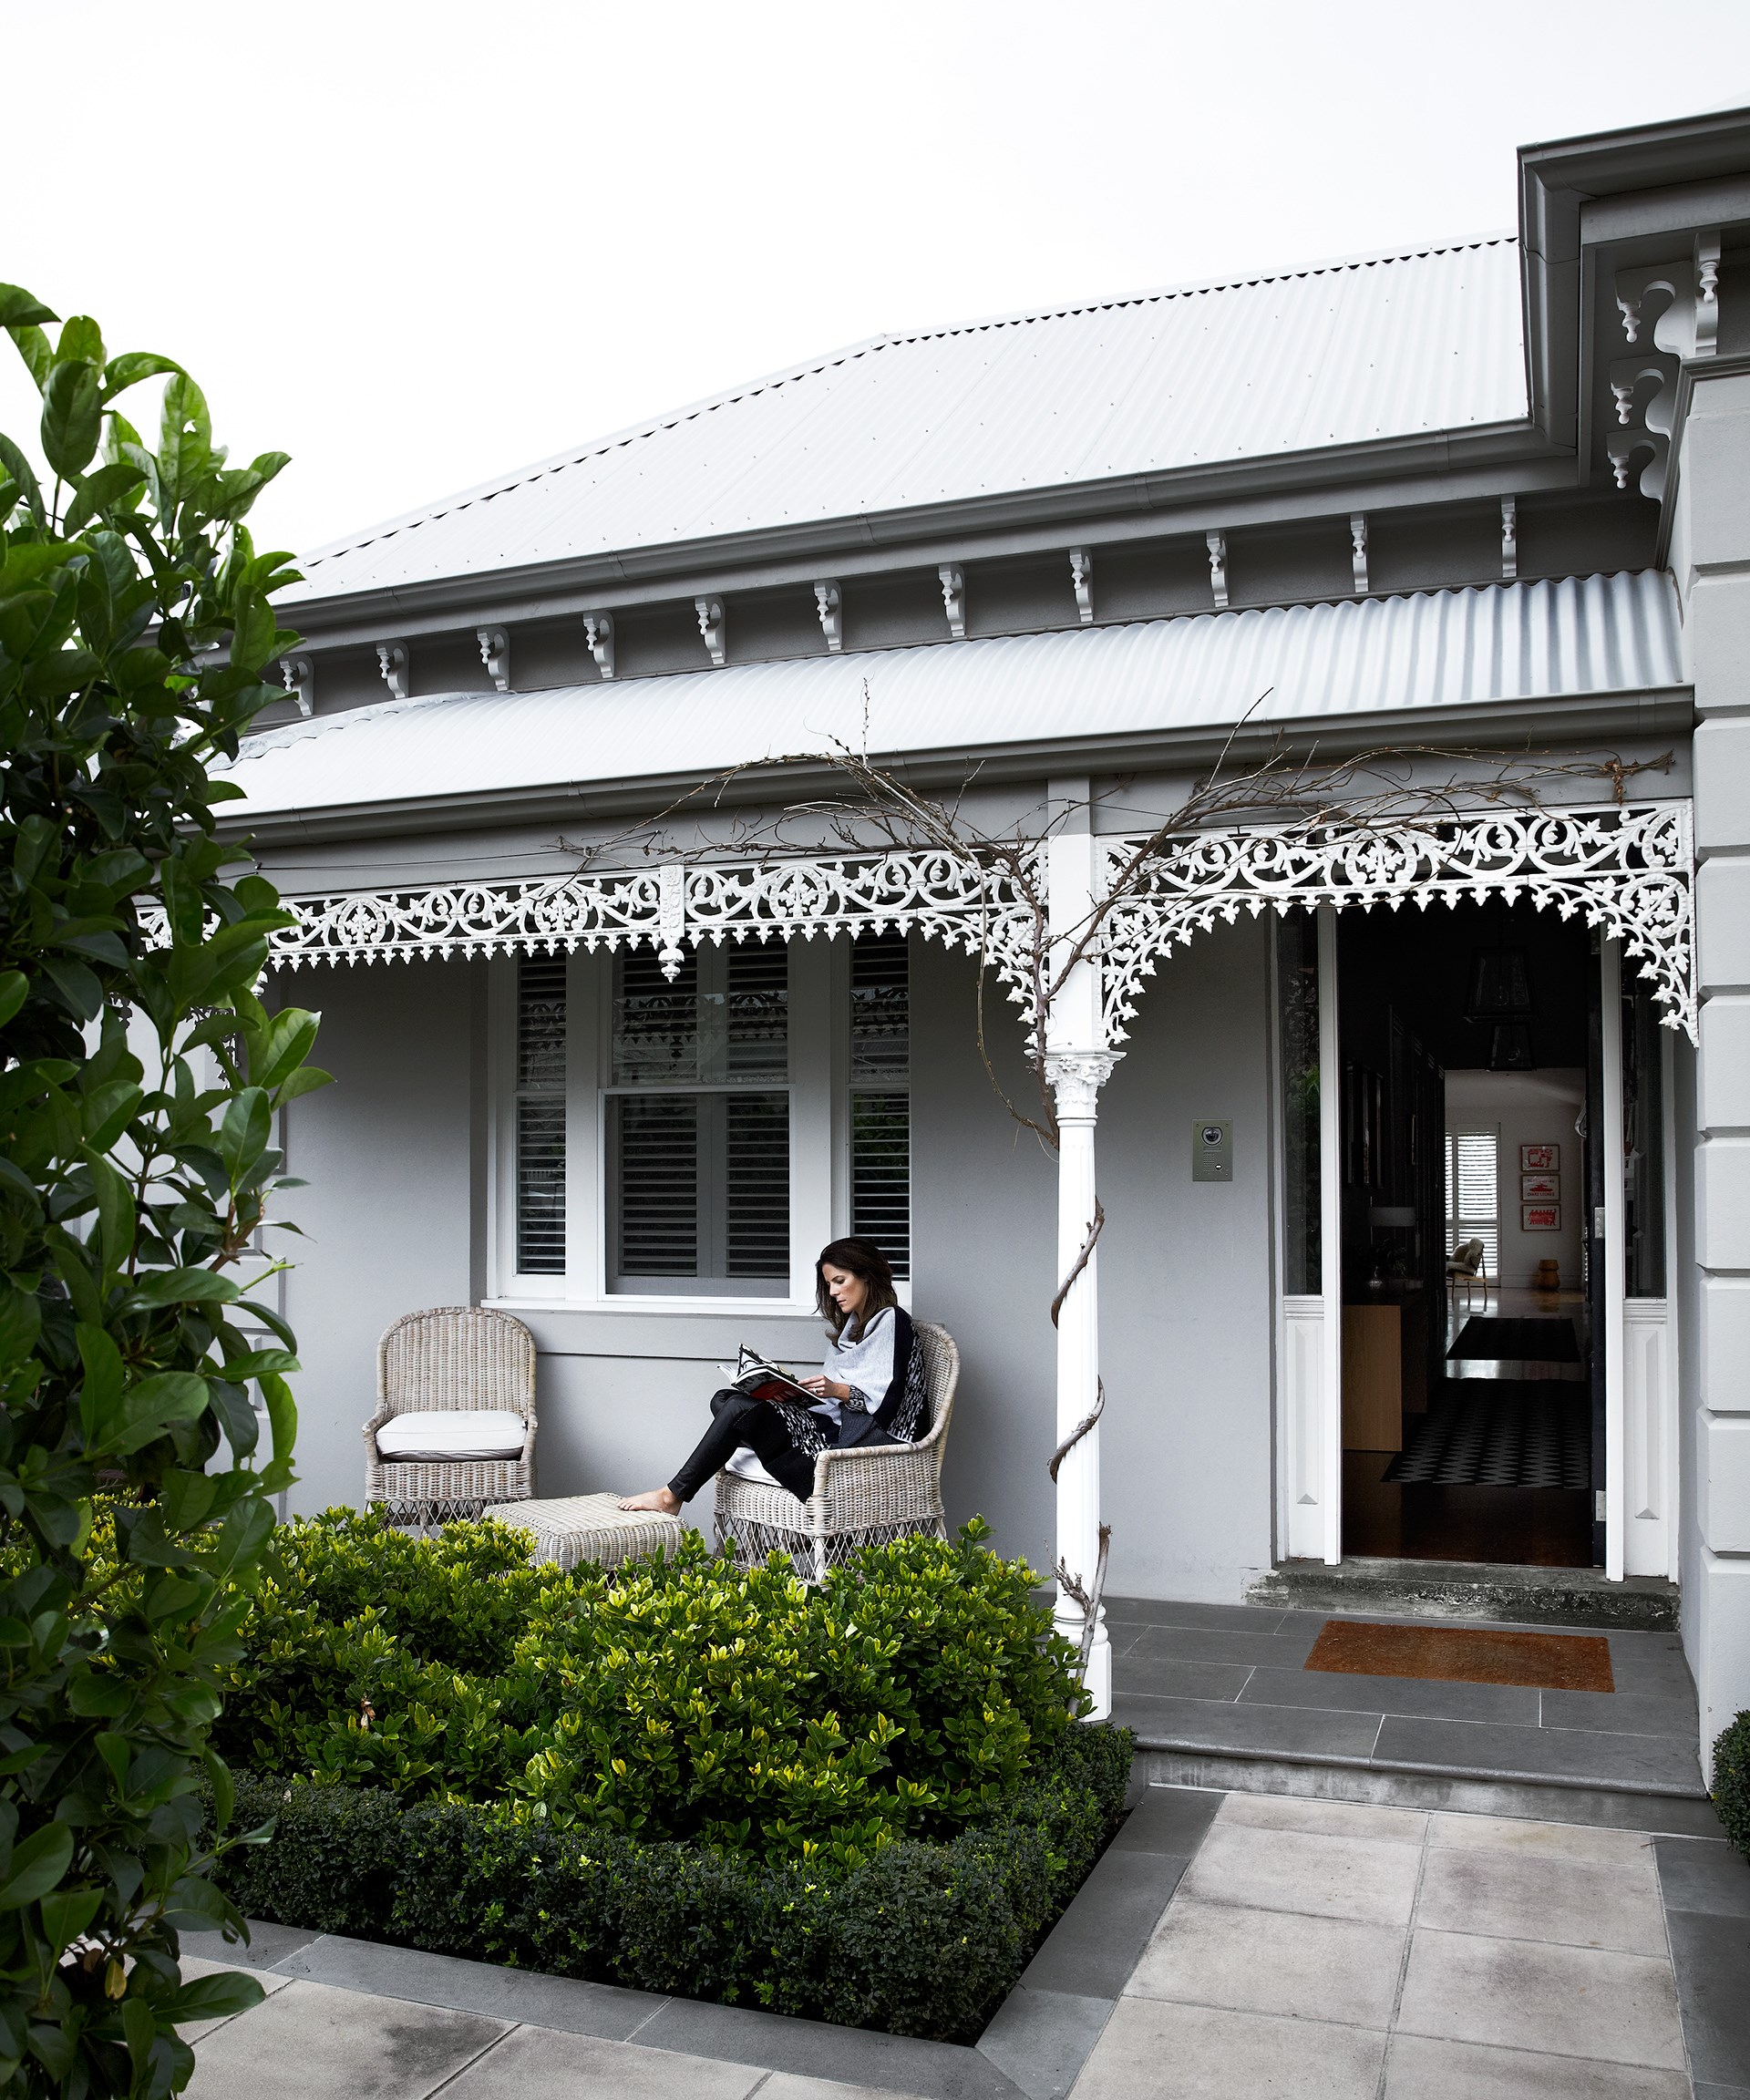 [Monochrome Victorian home in Melbourne](http://www.homestolove.com.au/georgina-and-wills-monochrome-victorian-home-1873). Photo: Sharyn Cairns / *real living*